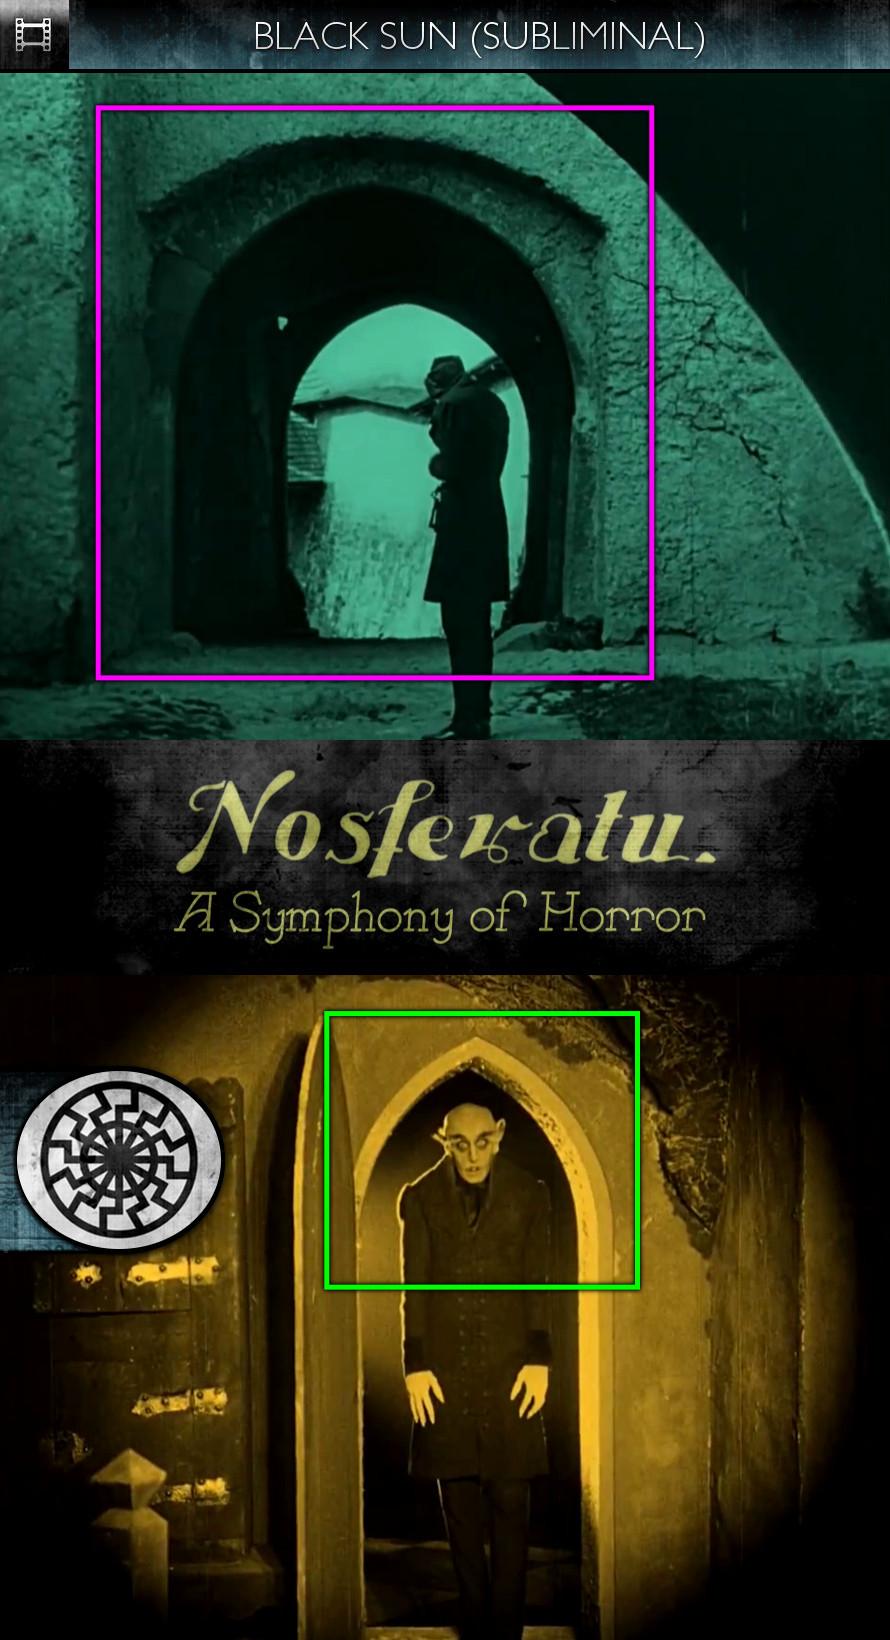 Nosferatu - A Symphony of Horror (1922) - Black Sun - Subliminal